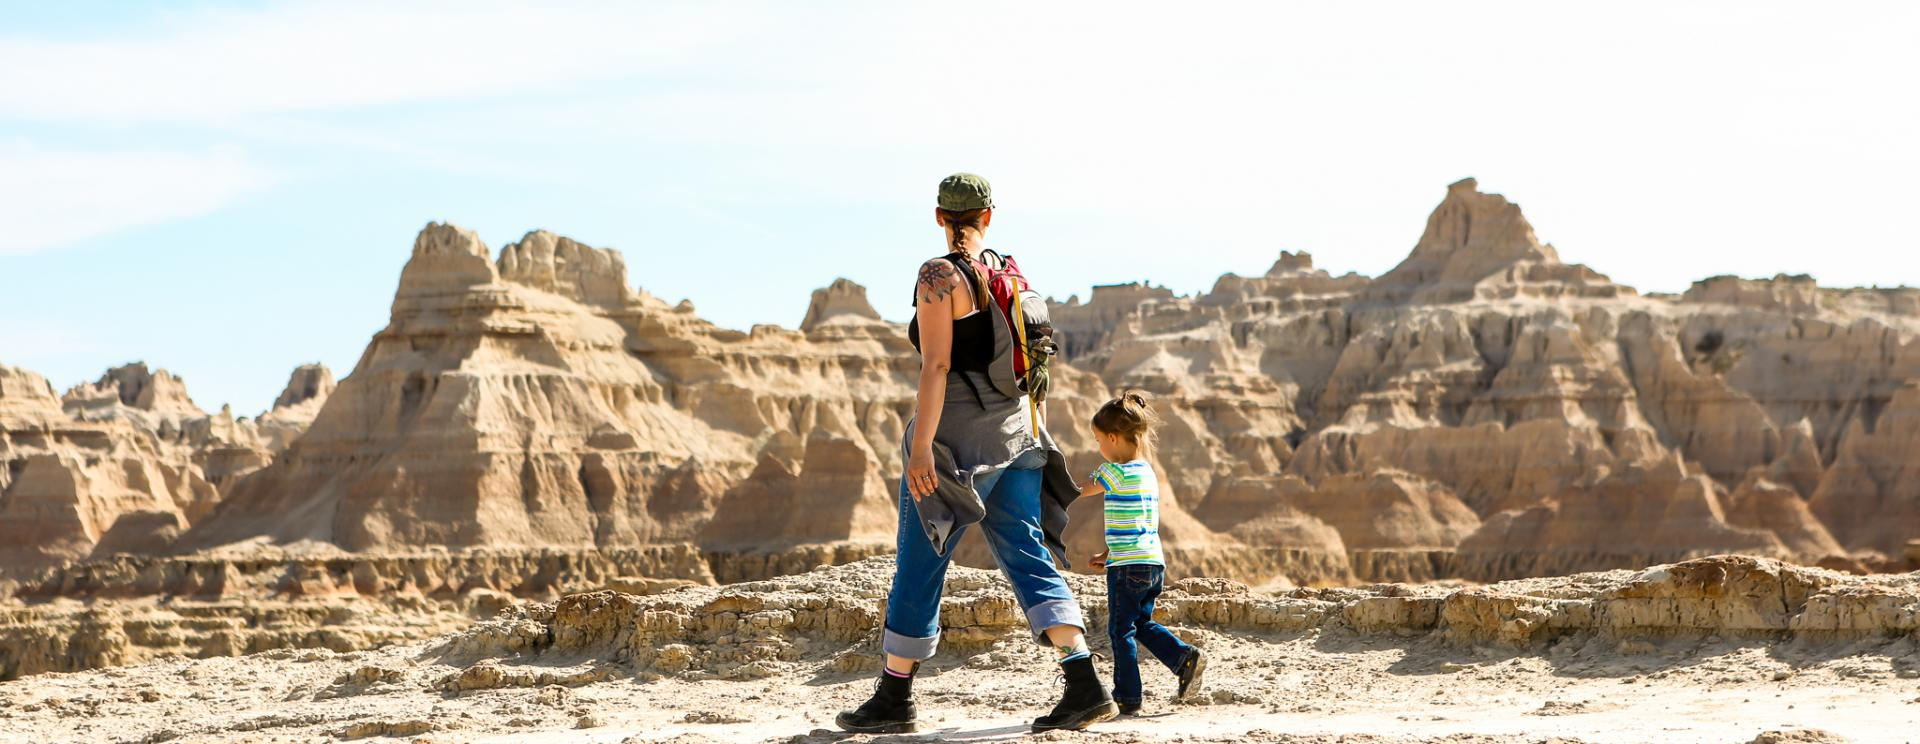 Four Hours in Badlands National Park – Your Super Quick Guide